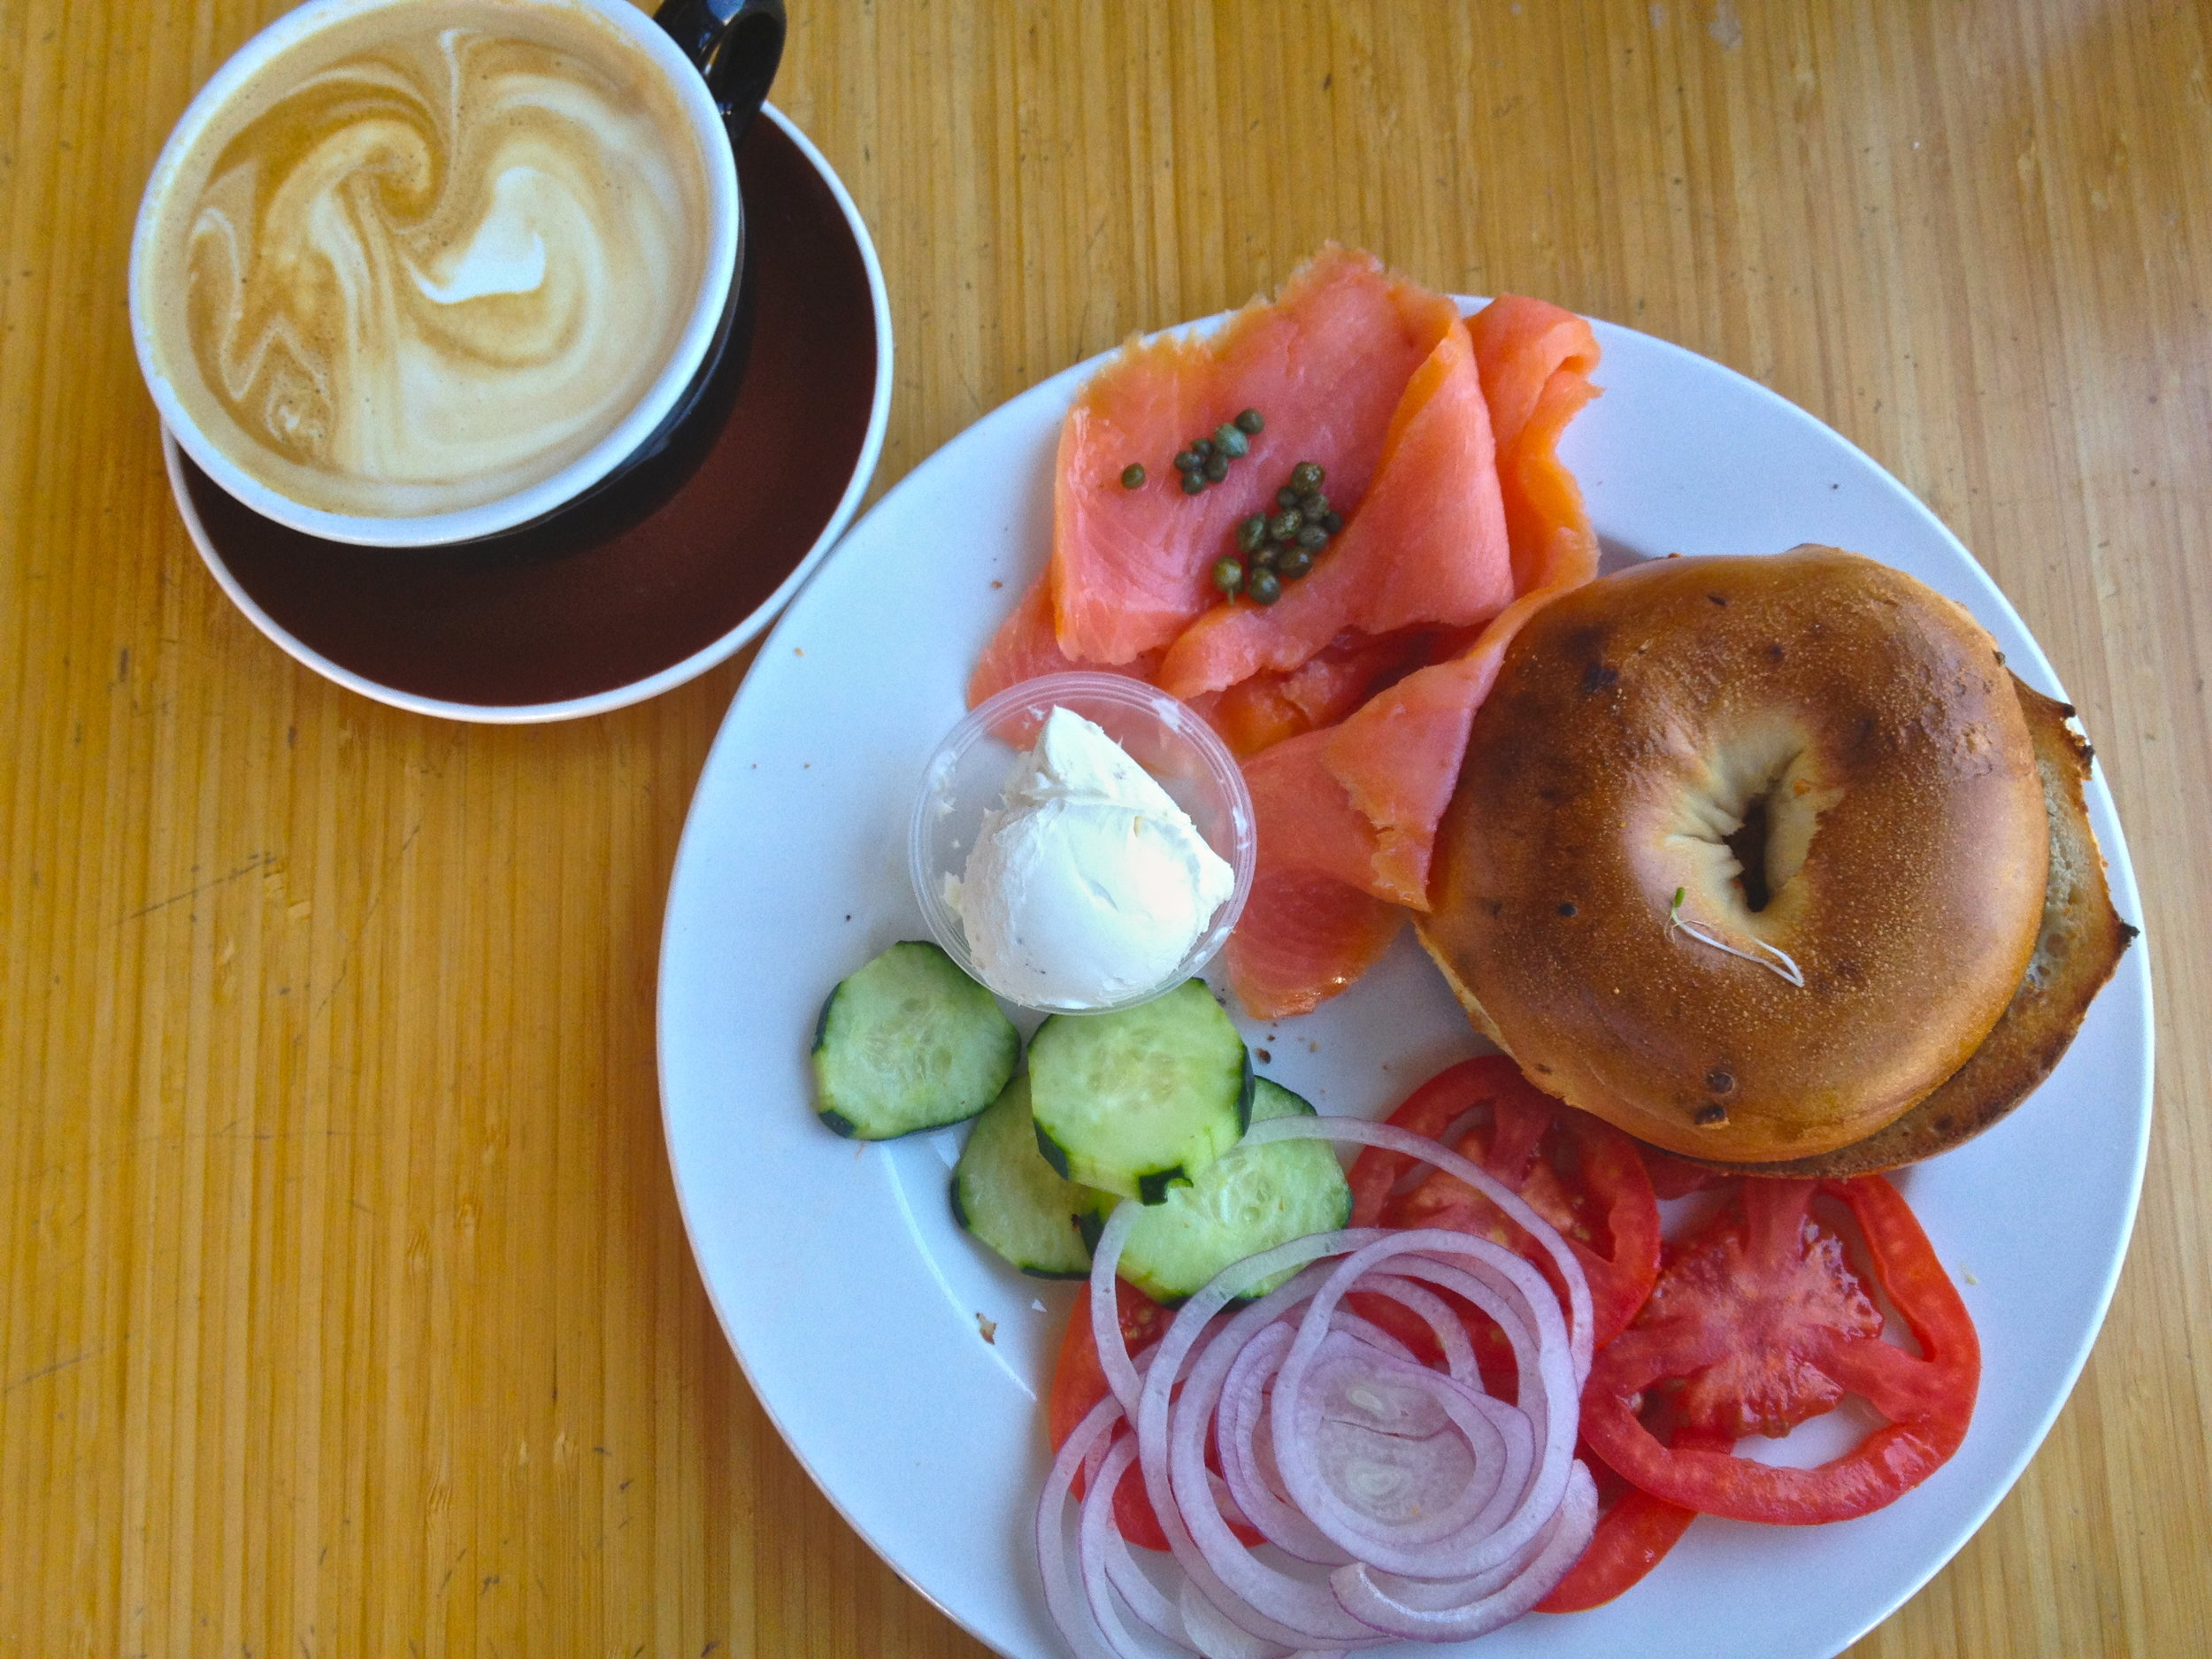 Nothing better than lox and a bagel.